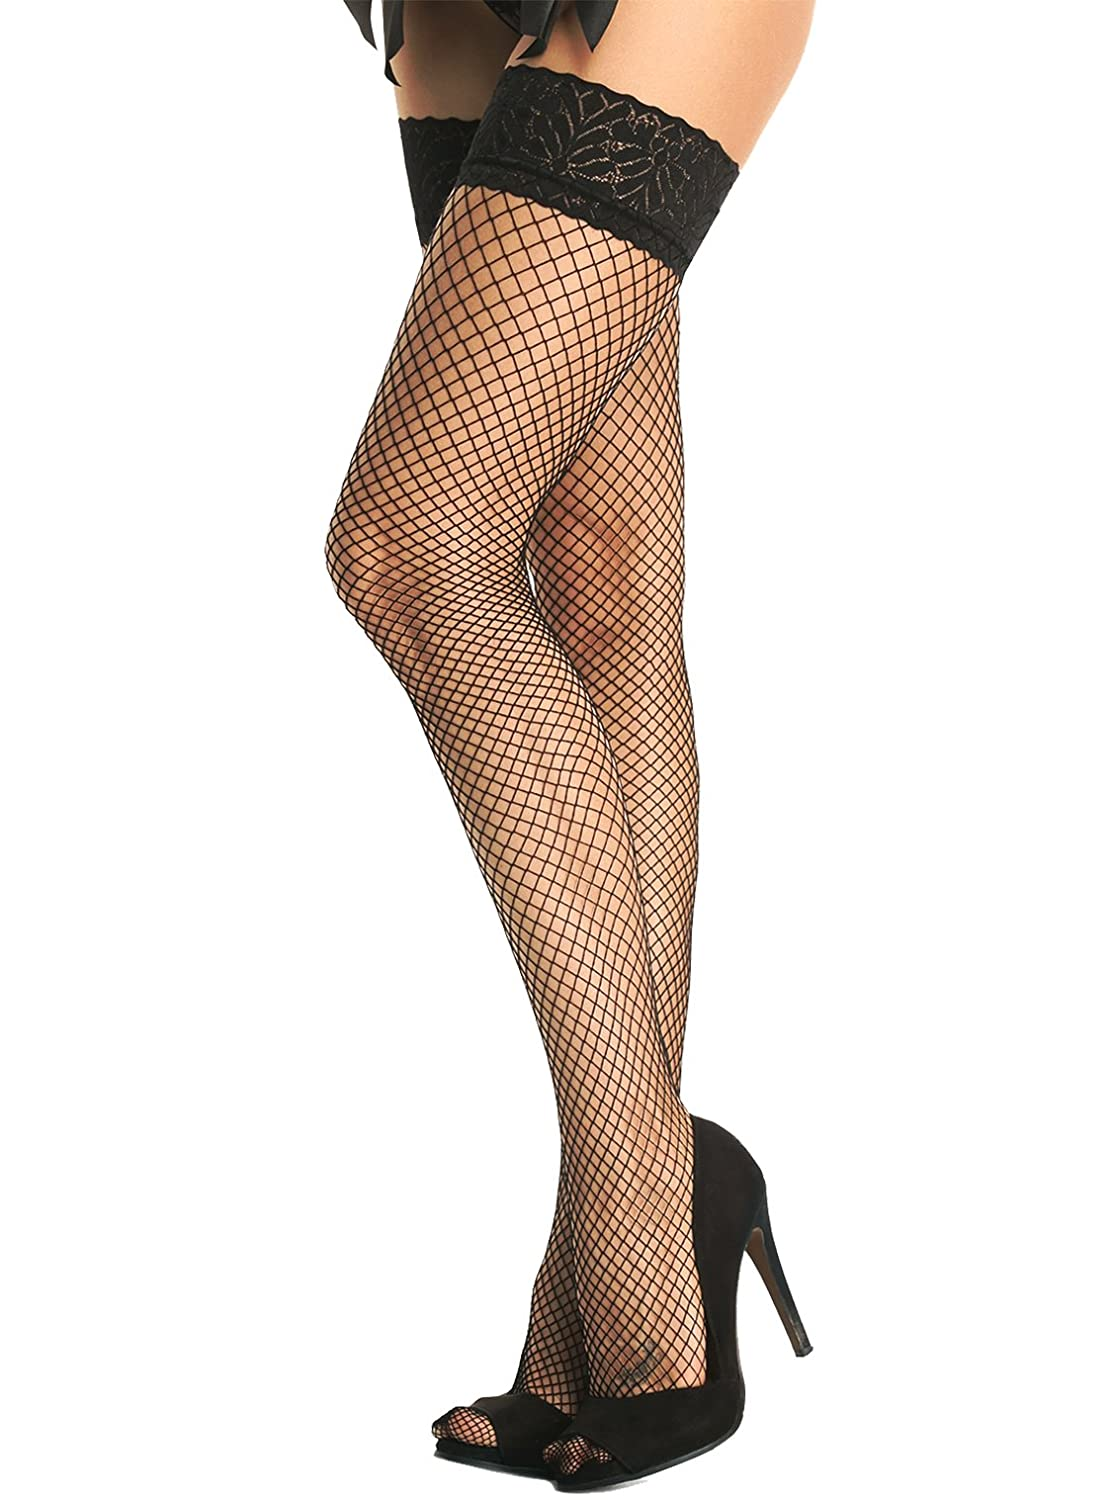 e424f9b0e04 Top 10 wholesale Lace Pattern Stockings - Chinabrands.com